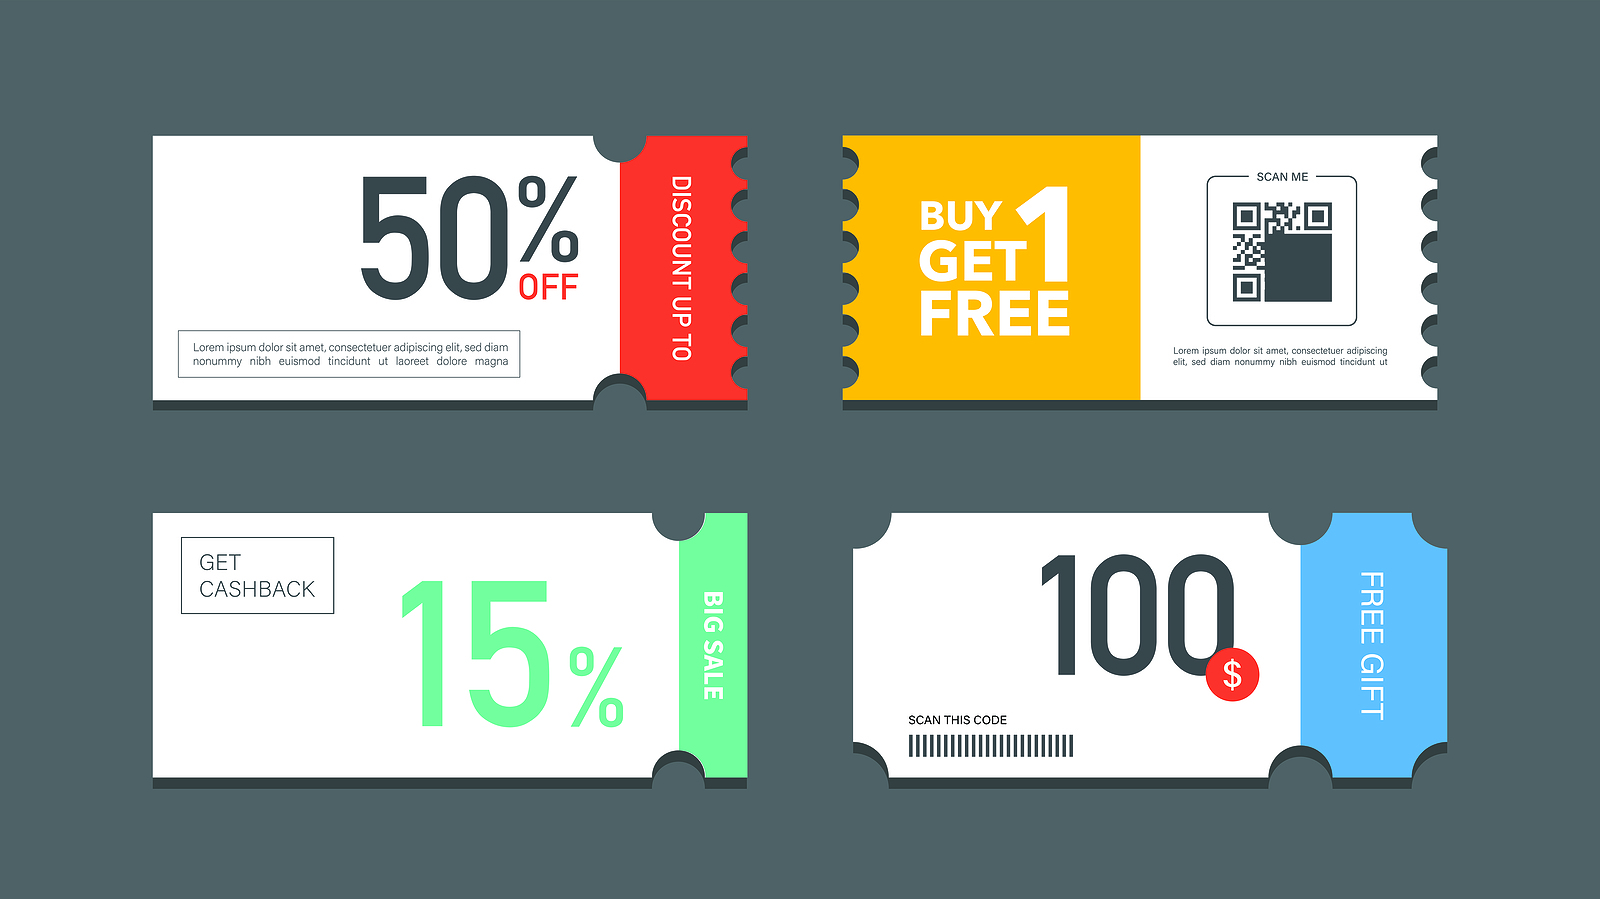 Leveraging Coupons & Coupon Code Data From Google Analytics